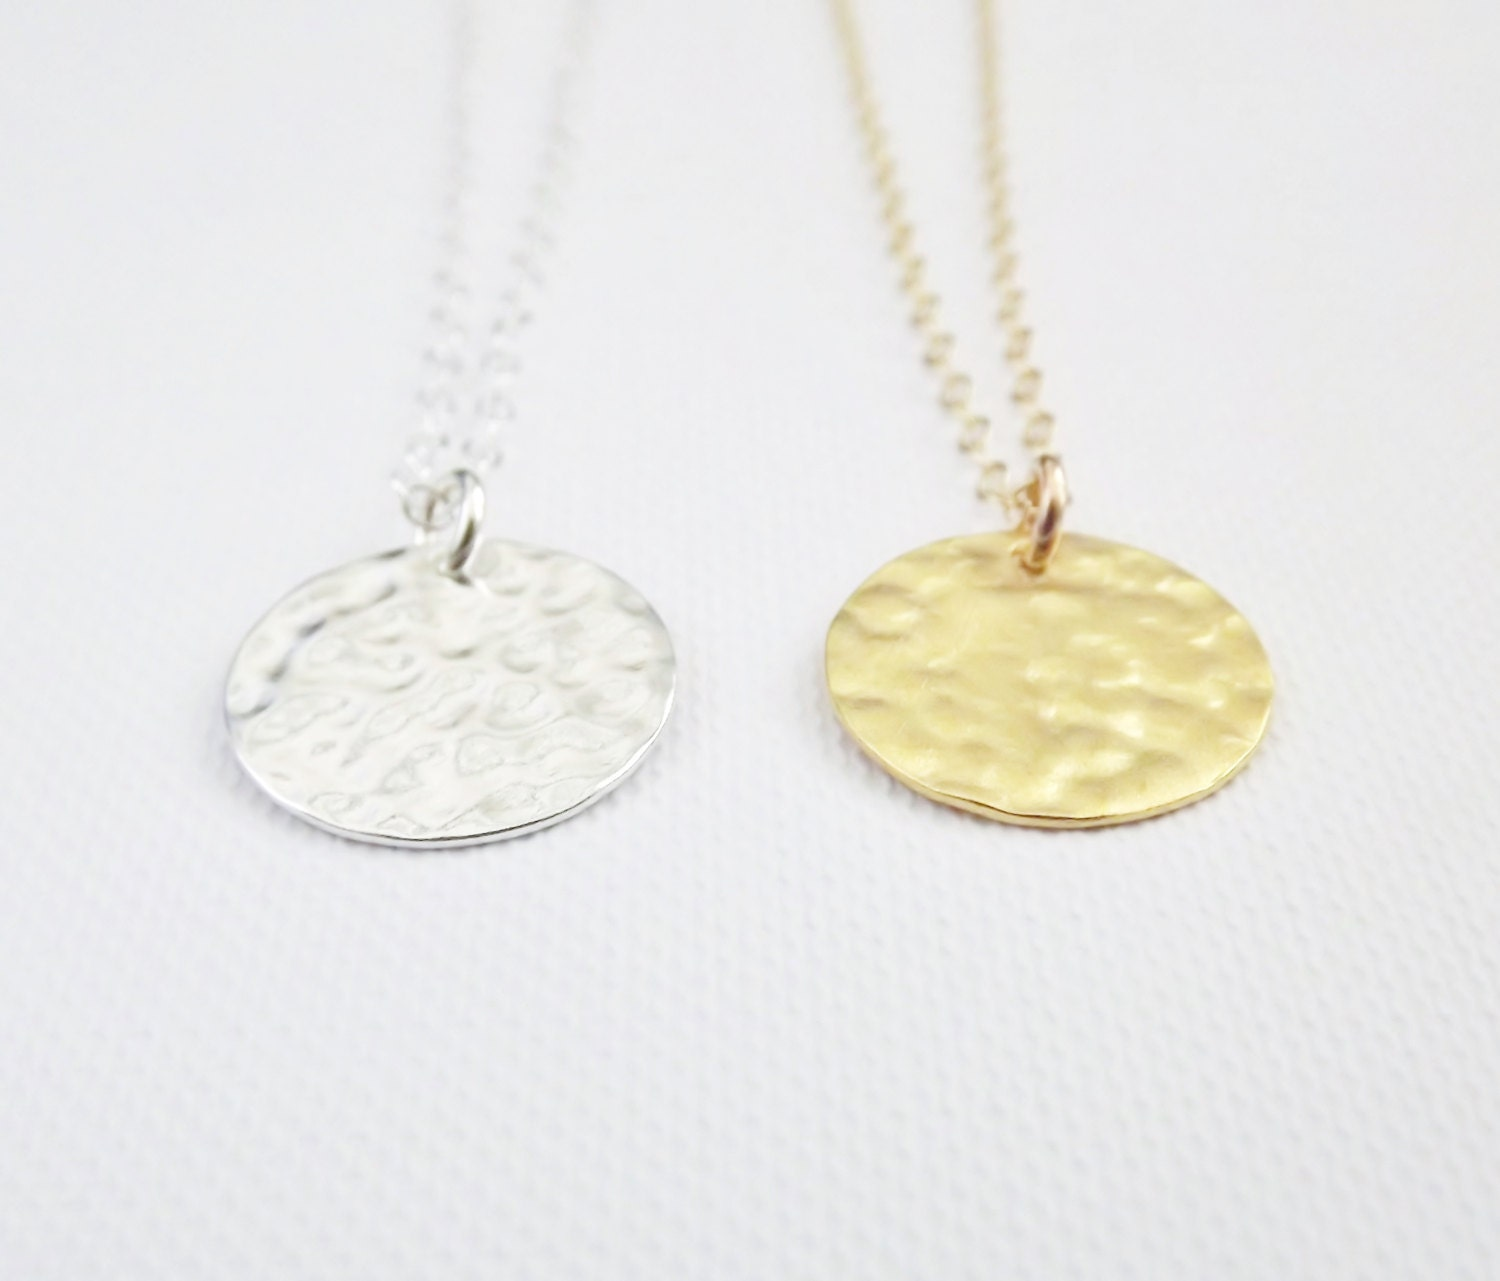 gold vintage pendant necklace silver chain hardy john link palu round with sterling hammered oval